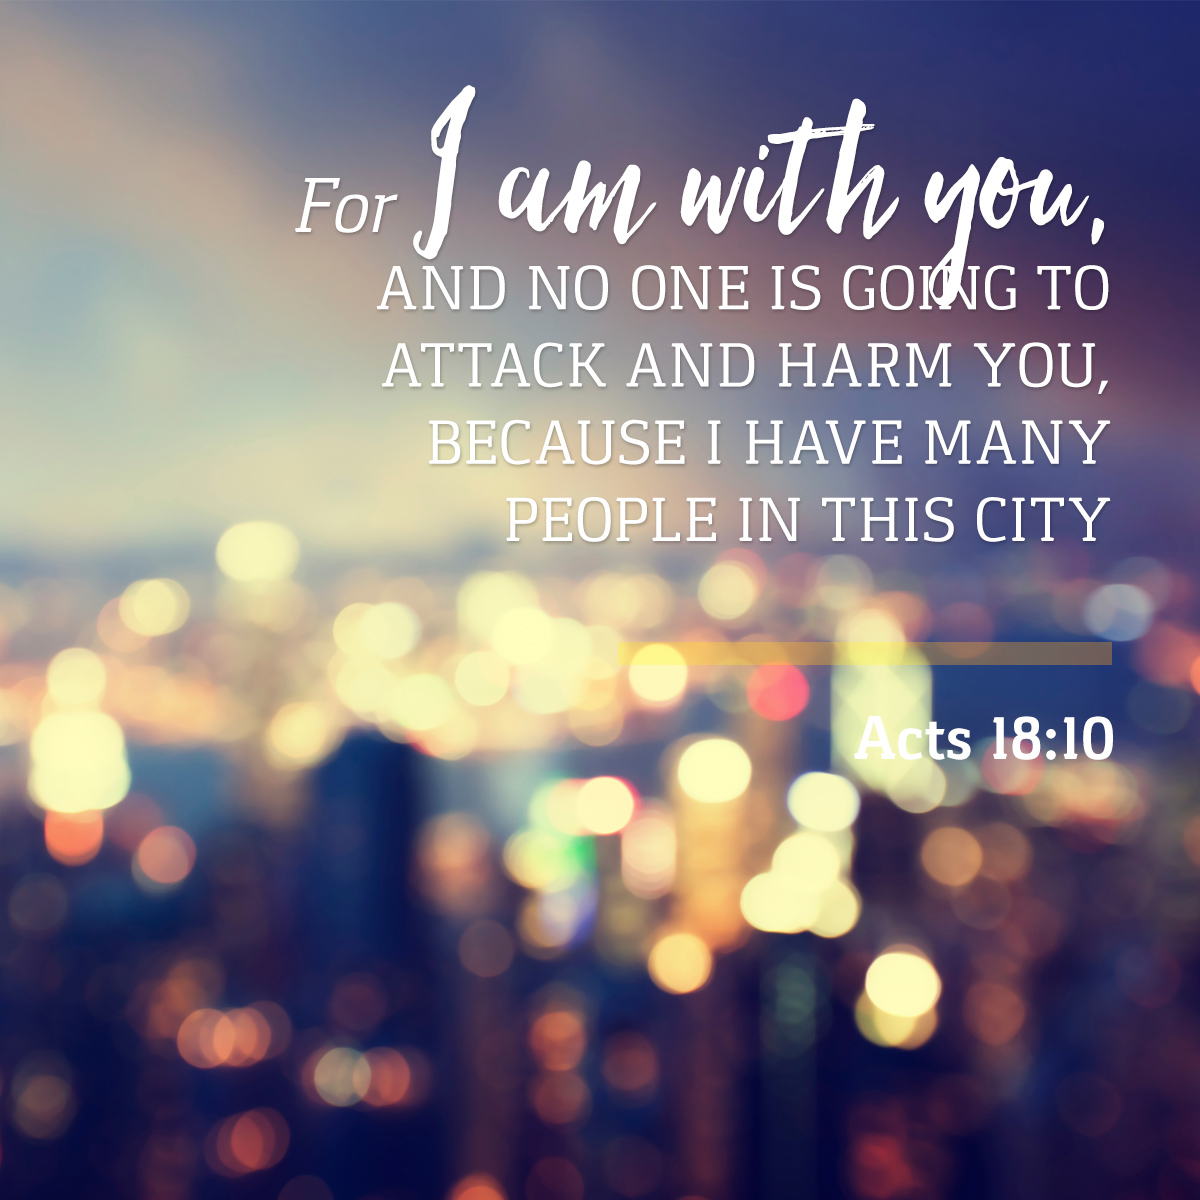 Acts 18:10 - Daily Verse